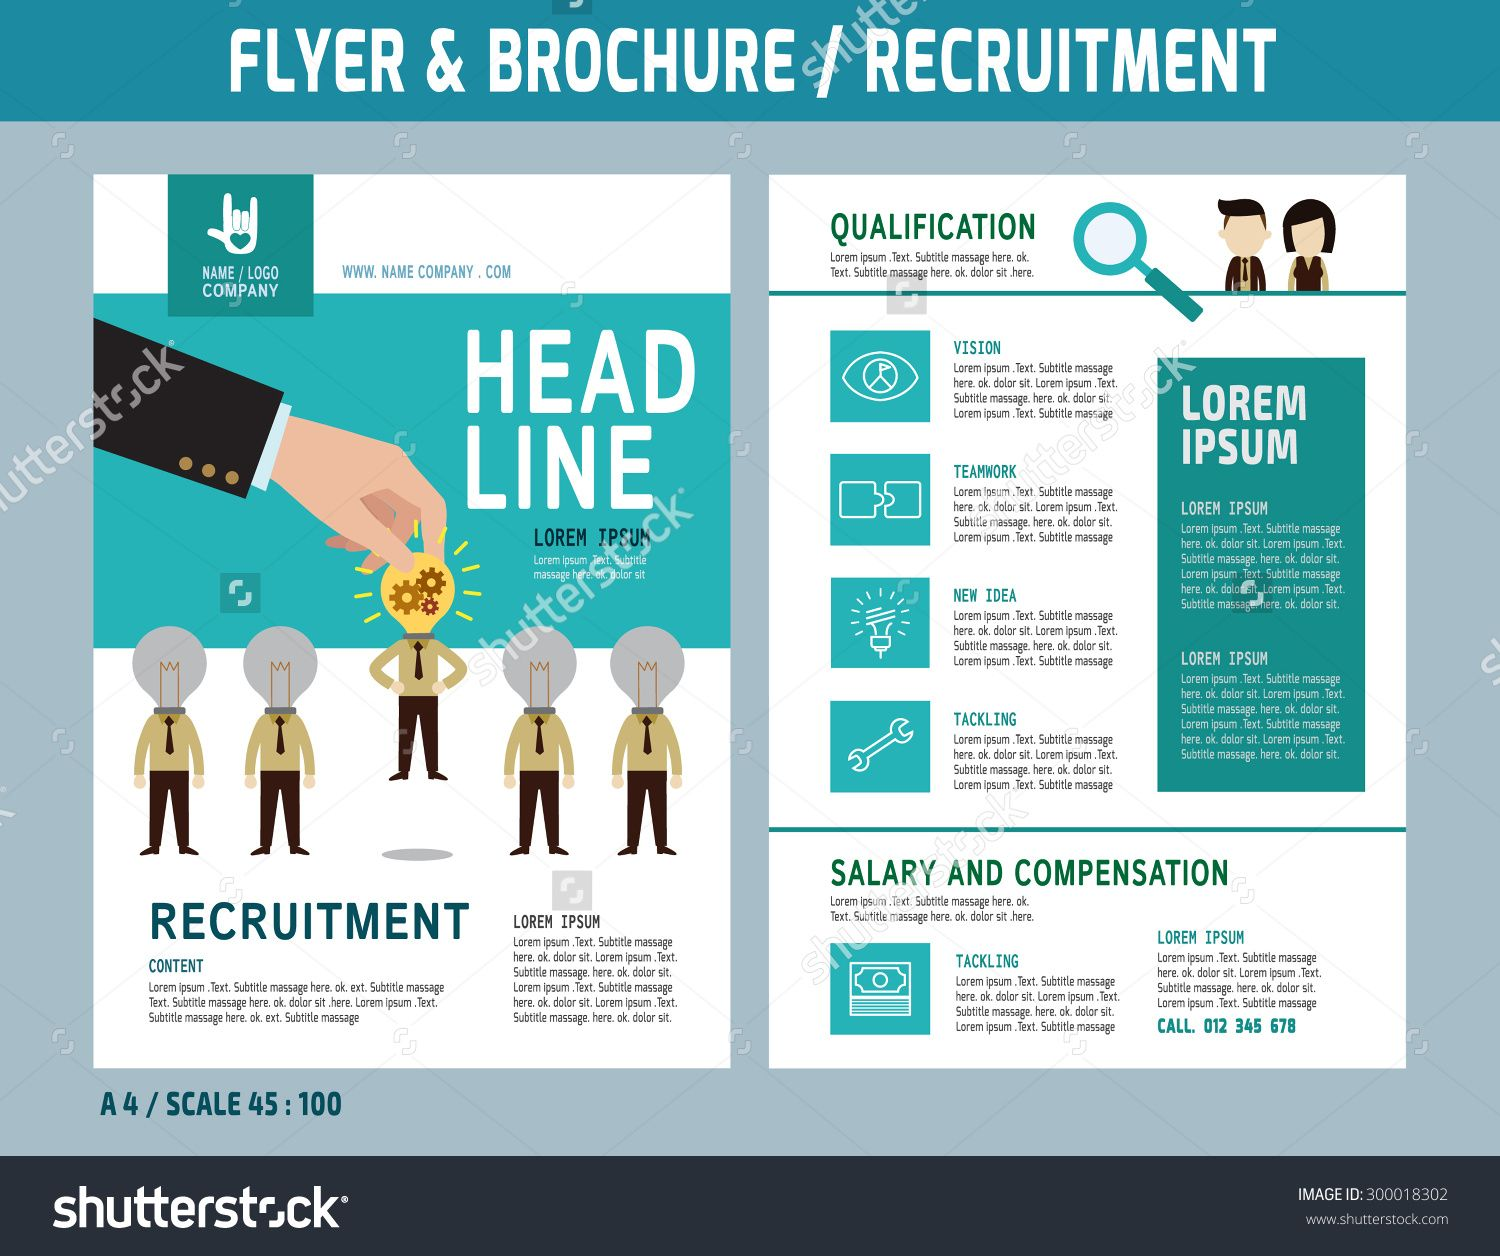 Recruitment Flyer Design Vector Template In A4 Size Brochure And